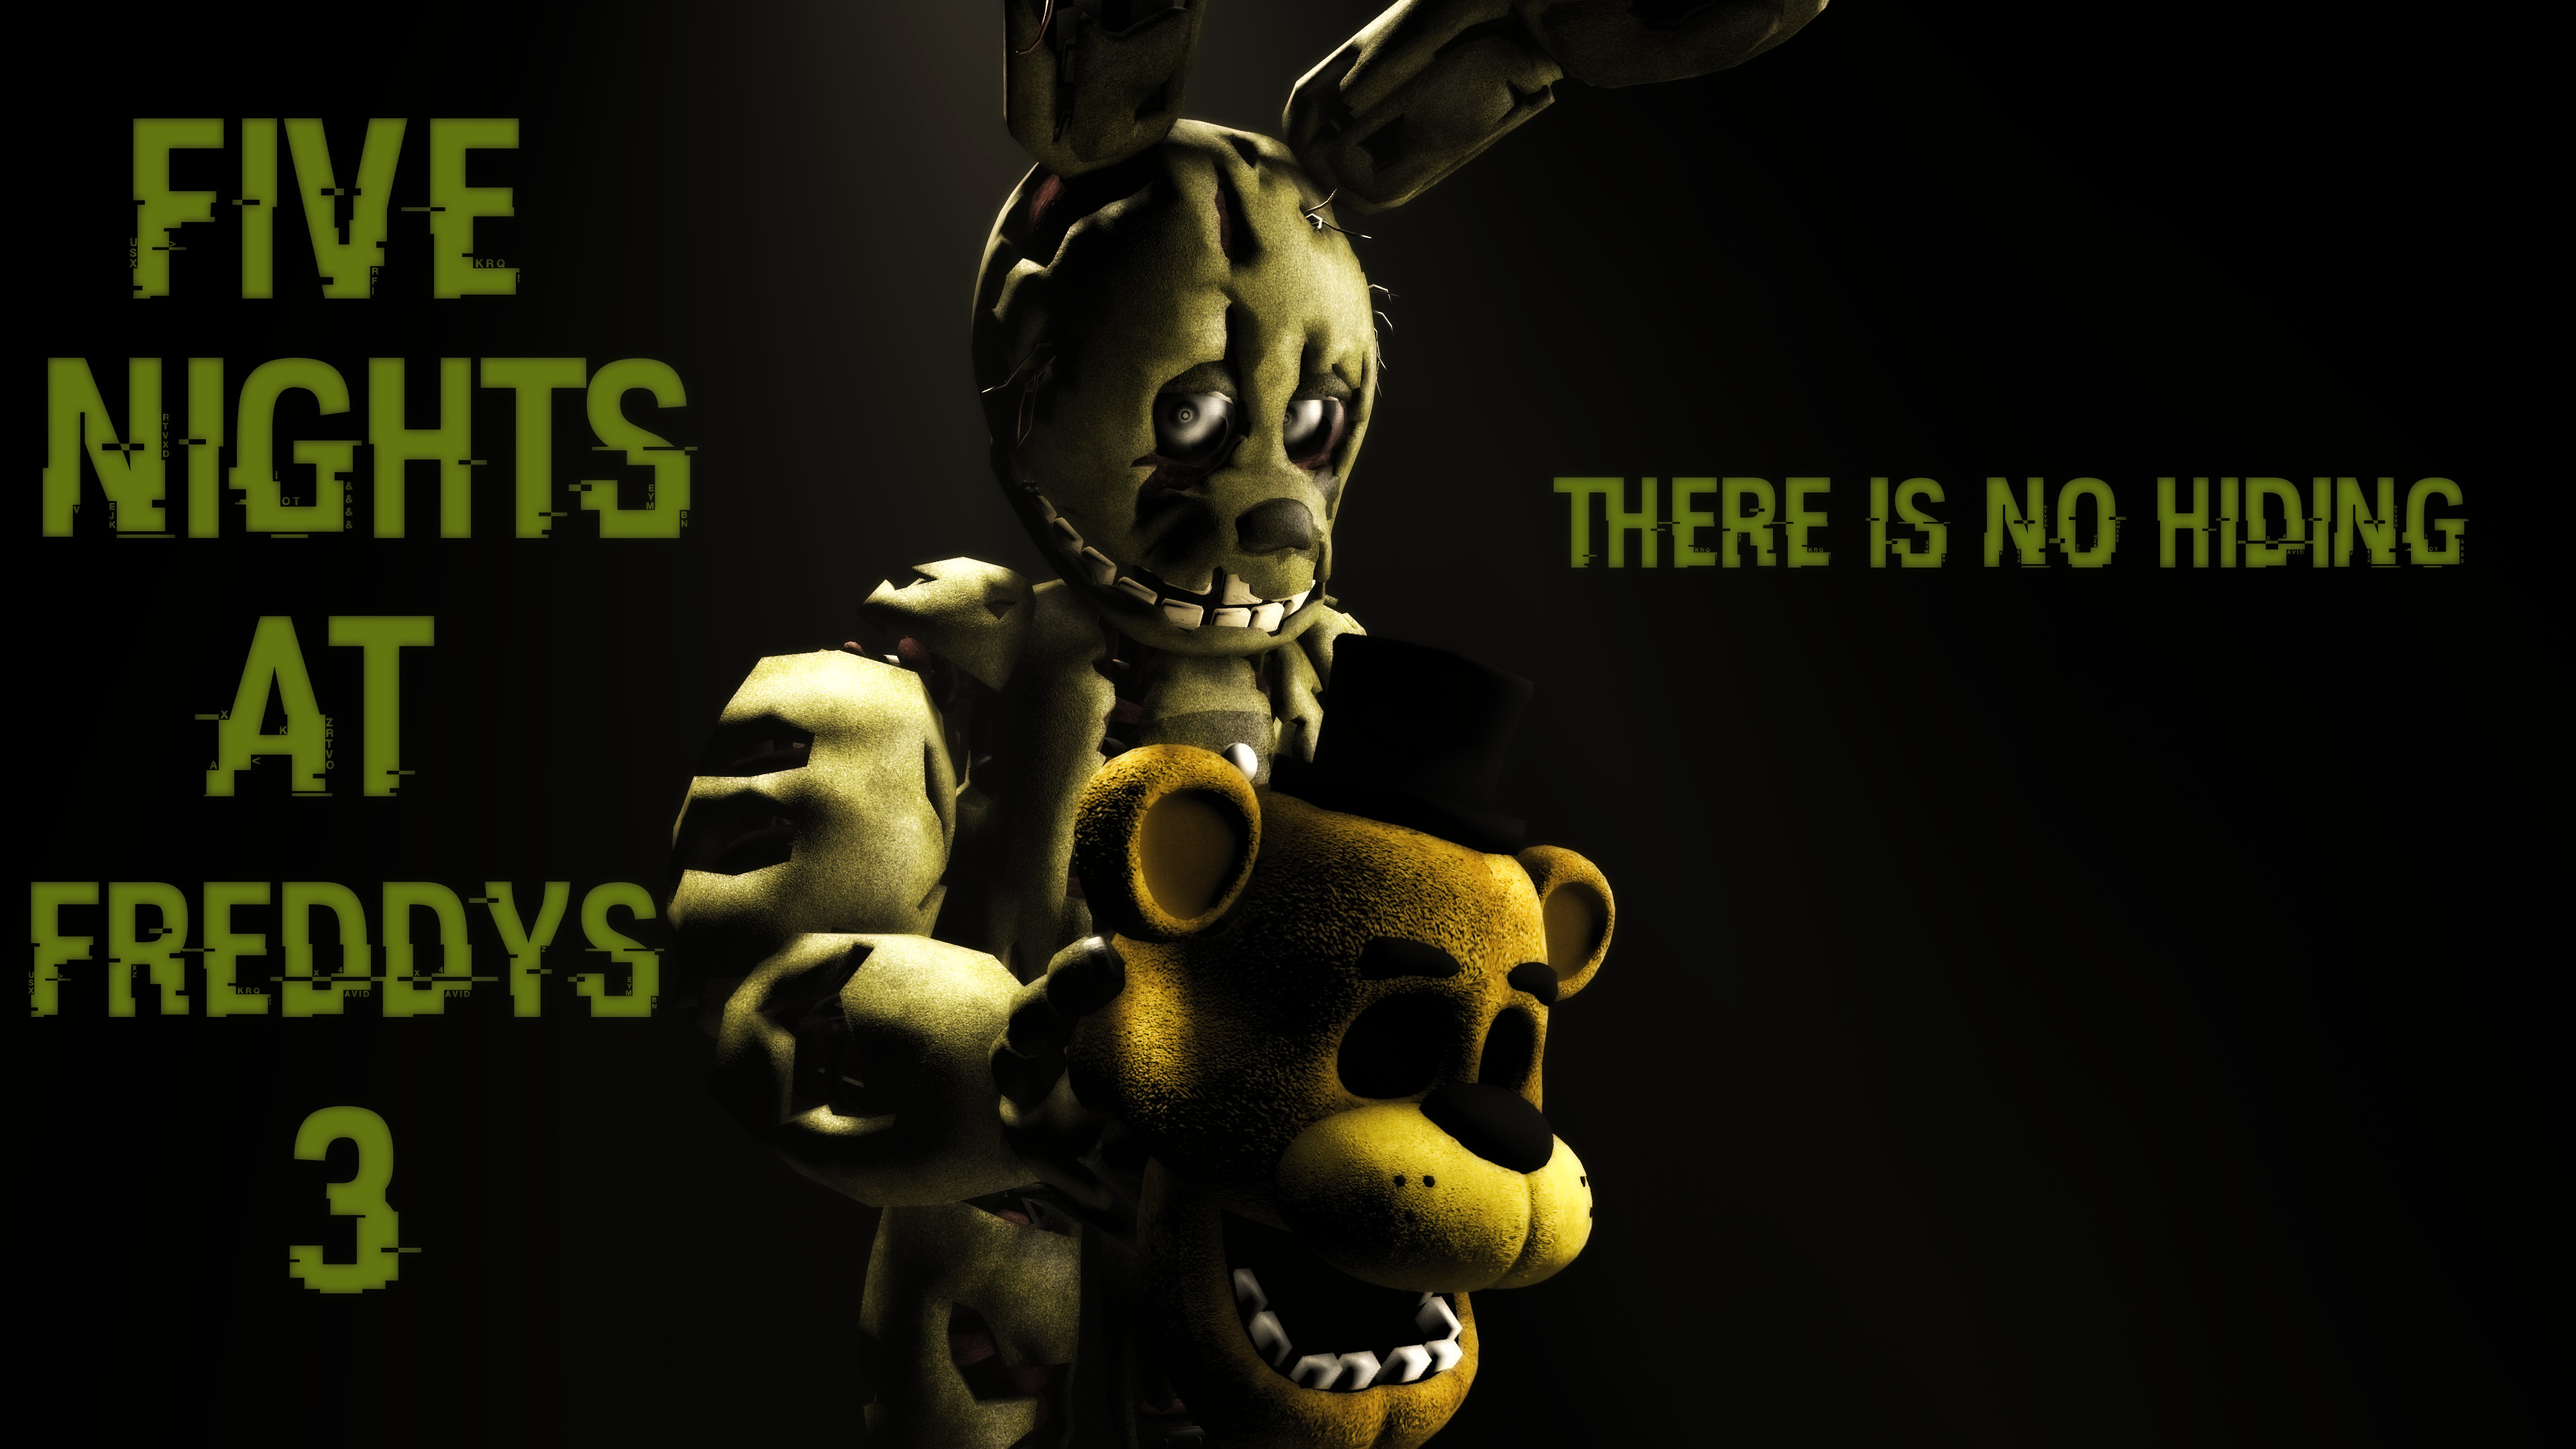 Res: 3840x2160, ... Five Nights At Freddy's 3 Wallpaper by boatfullogoats